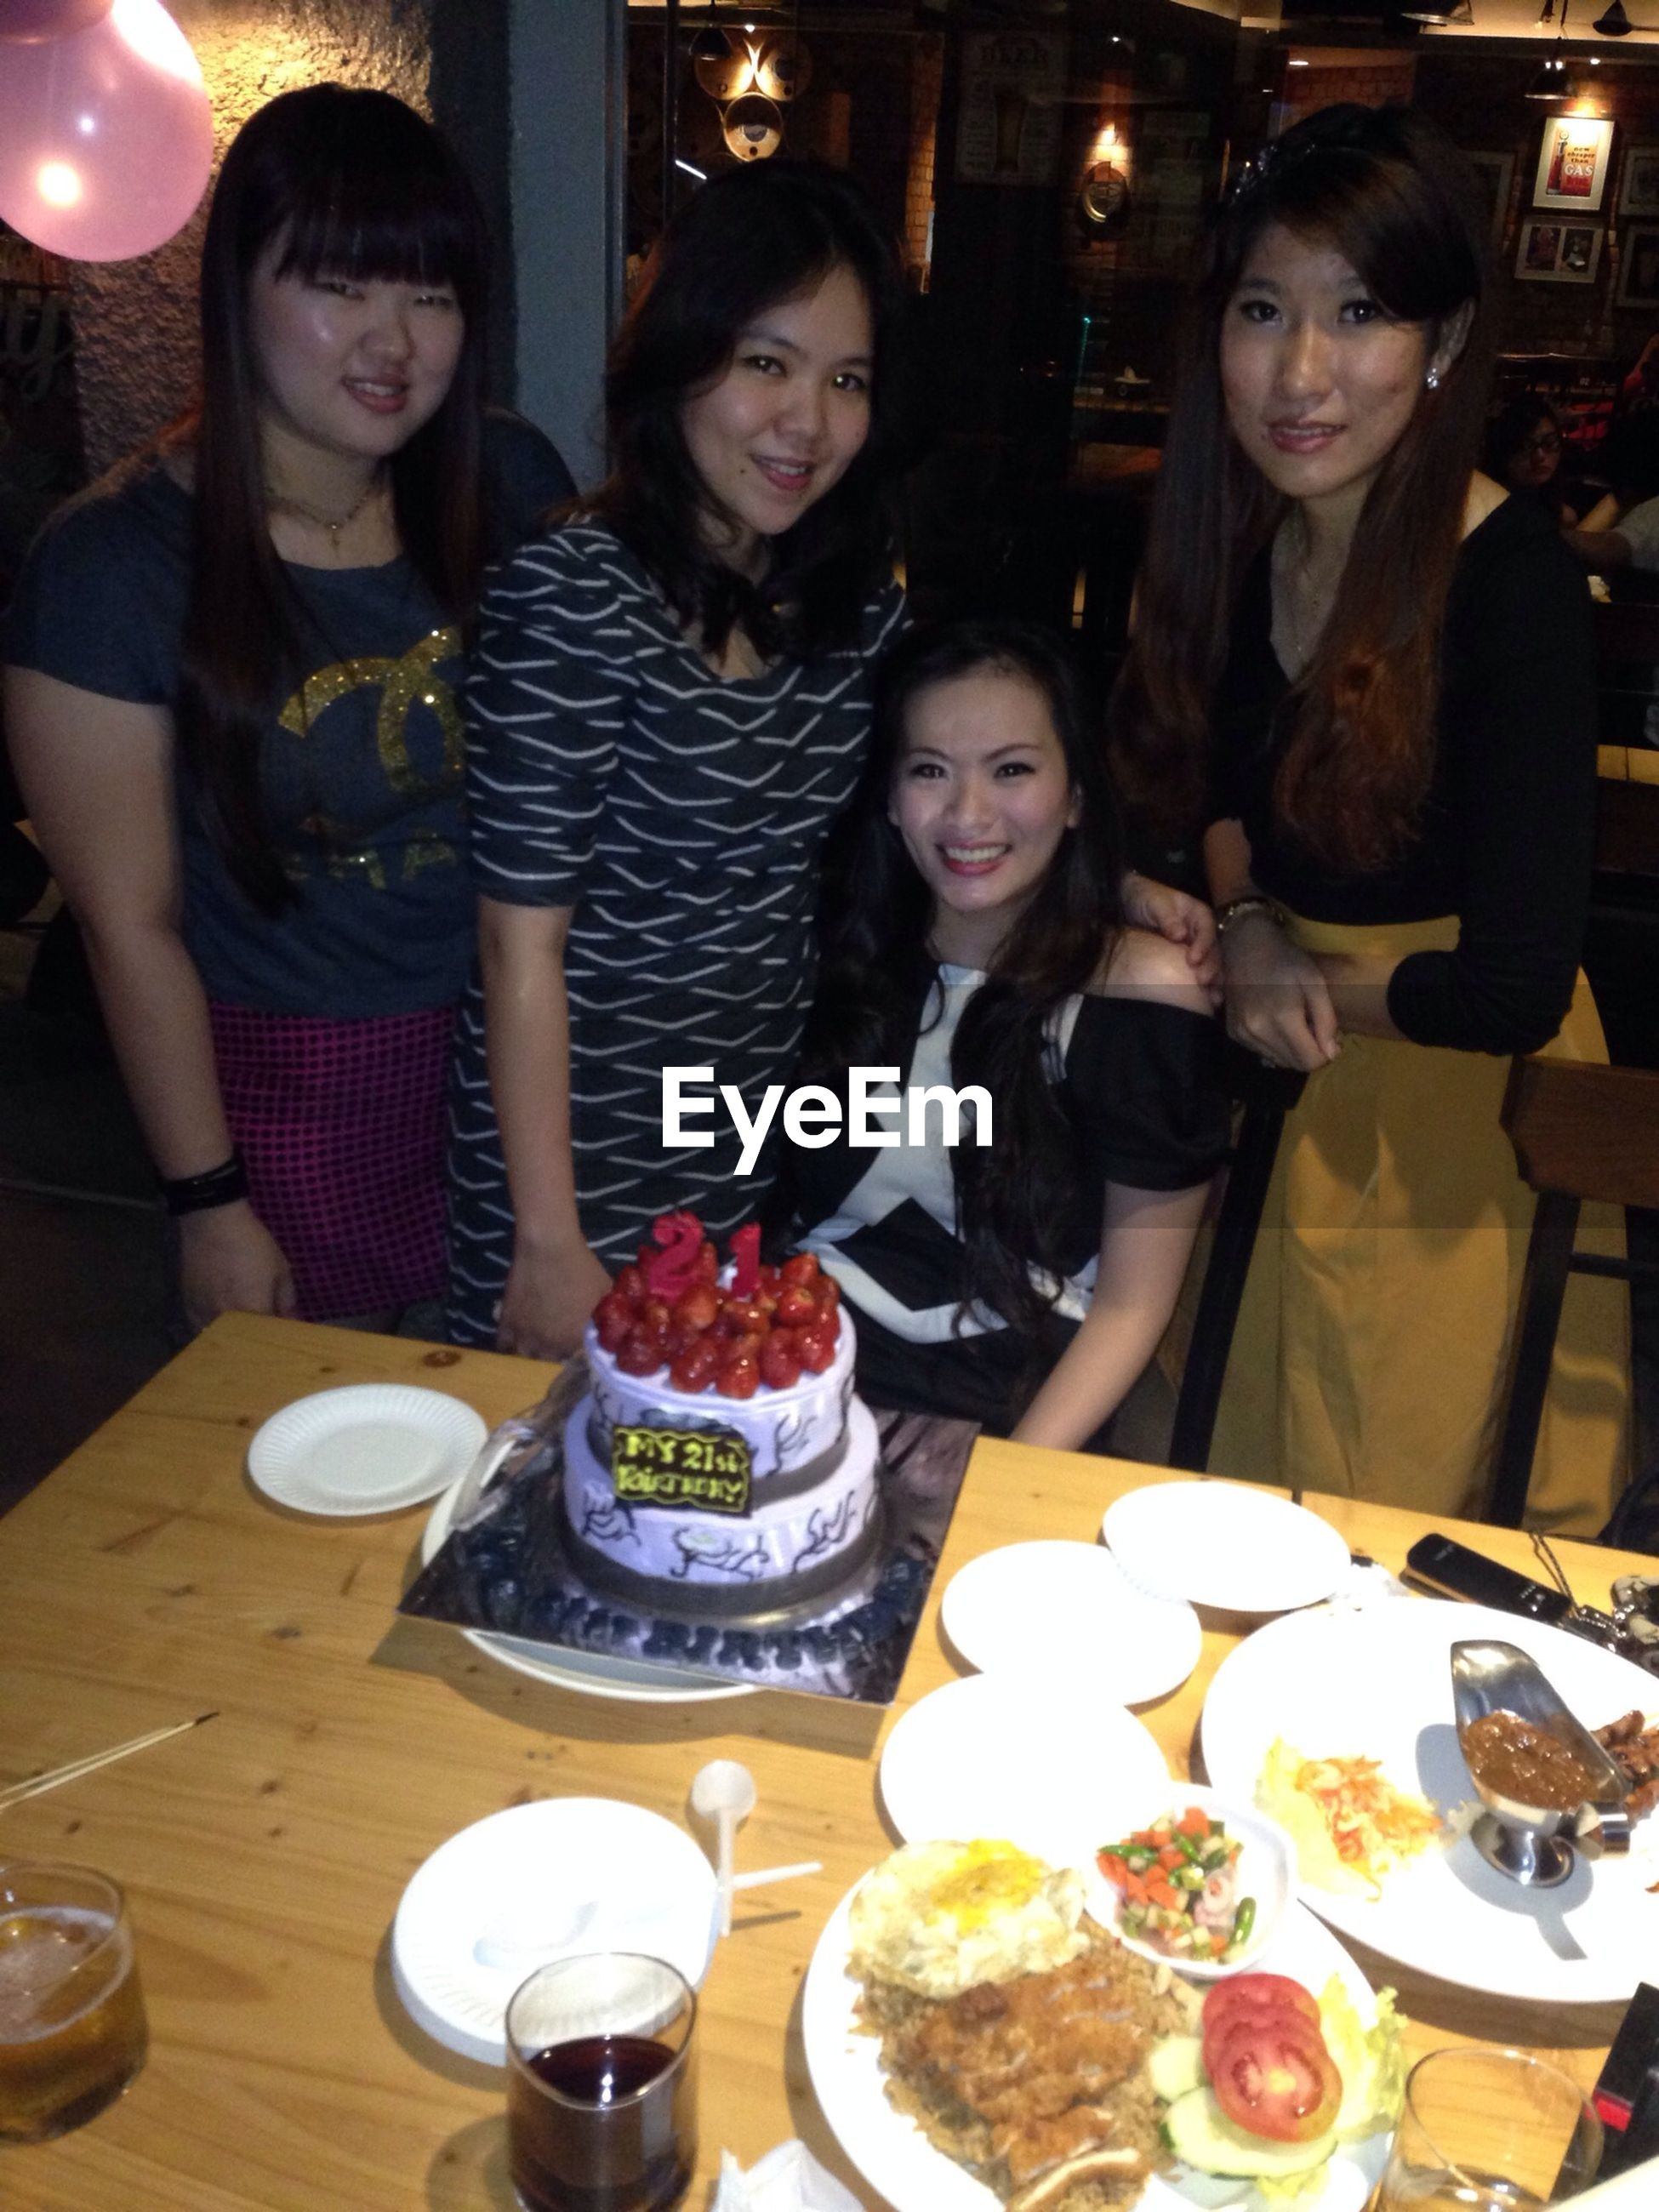 indoors, lifestyles, young adult, leisure activity, person, table, young women, togetherness, portrait, food and drink, looking at camera, happiness, front view, restaurant, casual clothing, smiling, sitting, friendship